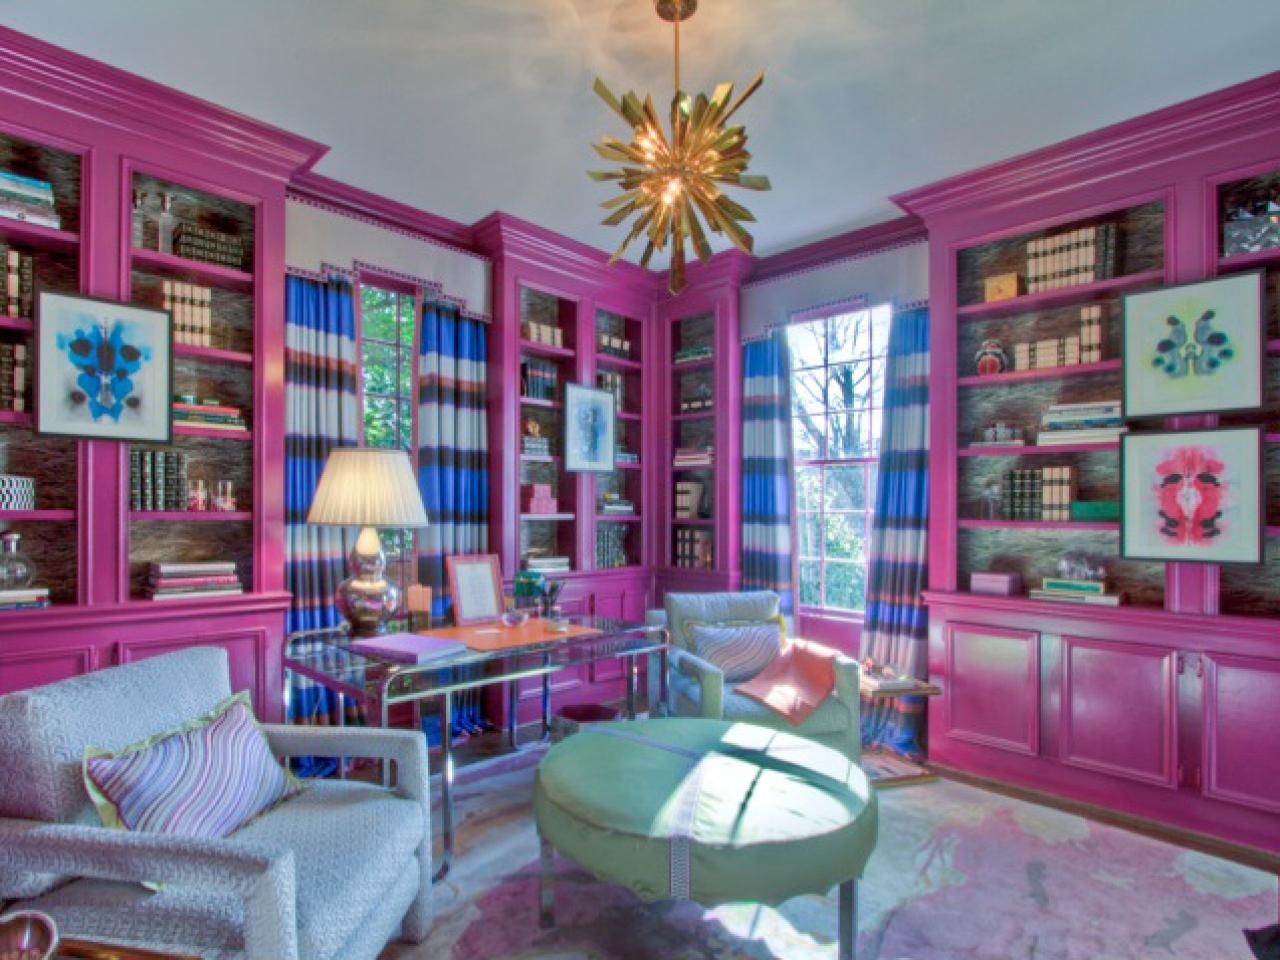 Mint Green And Purple Bedroom  29  1000  Images About Decor On  Pinterest. Mint Green And Purple Bedroom   Eddiemcgrady com